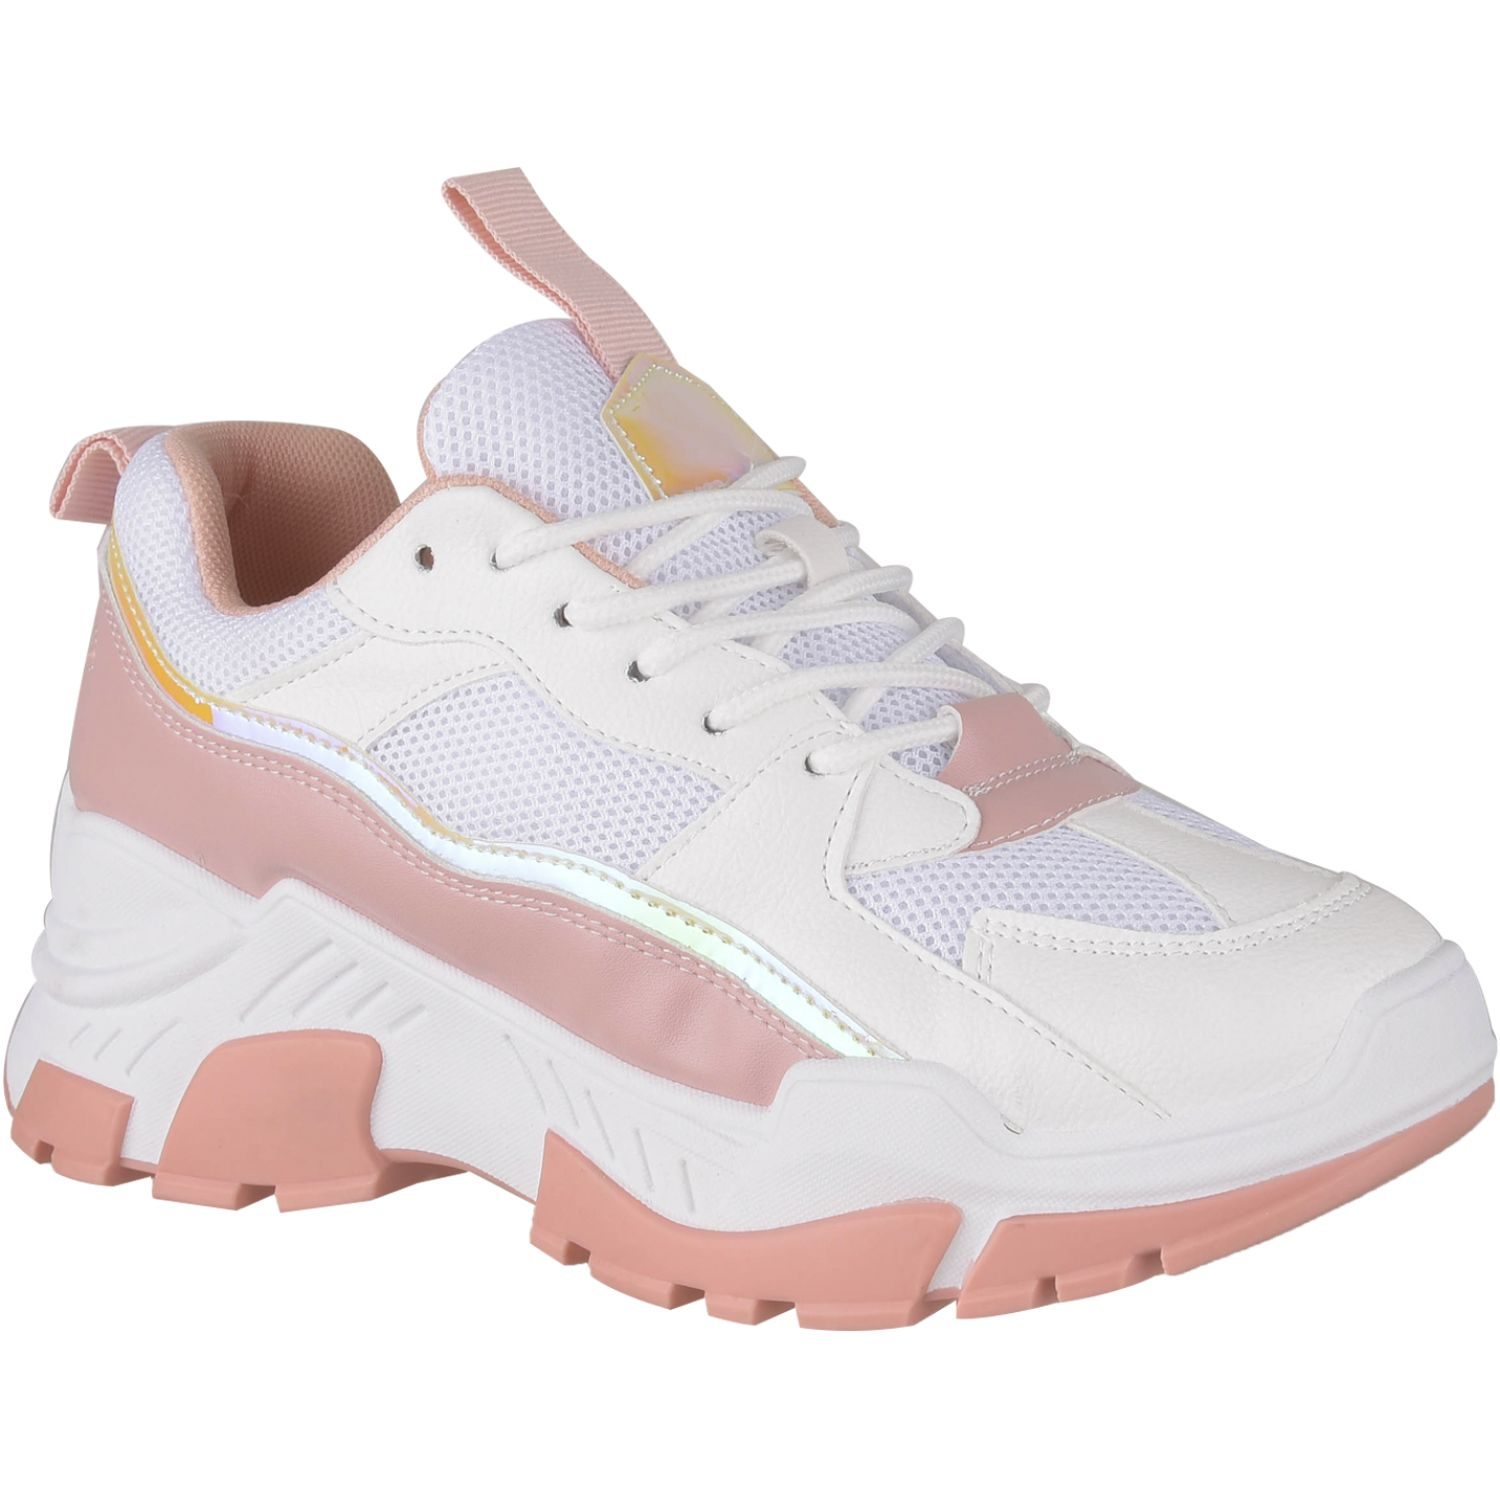 Platanitos Z 1206 Rosado Zapatillas Fashion